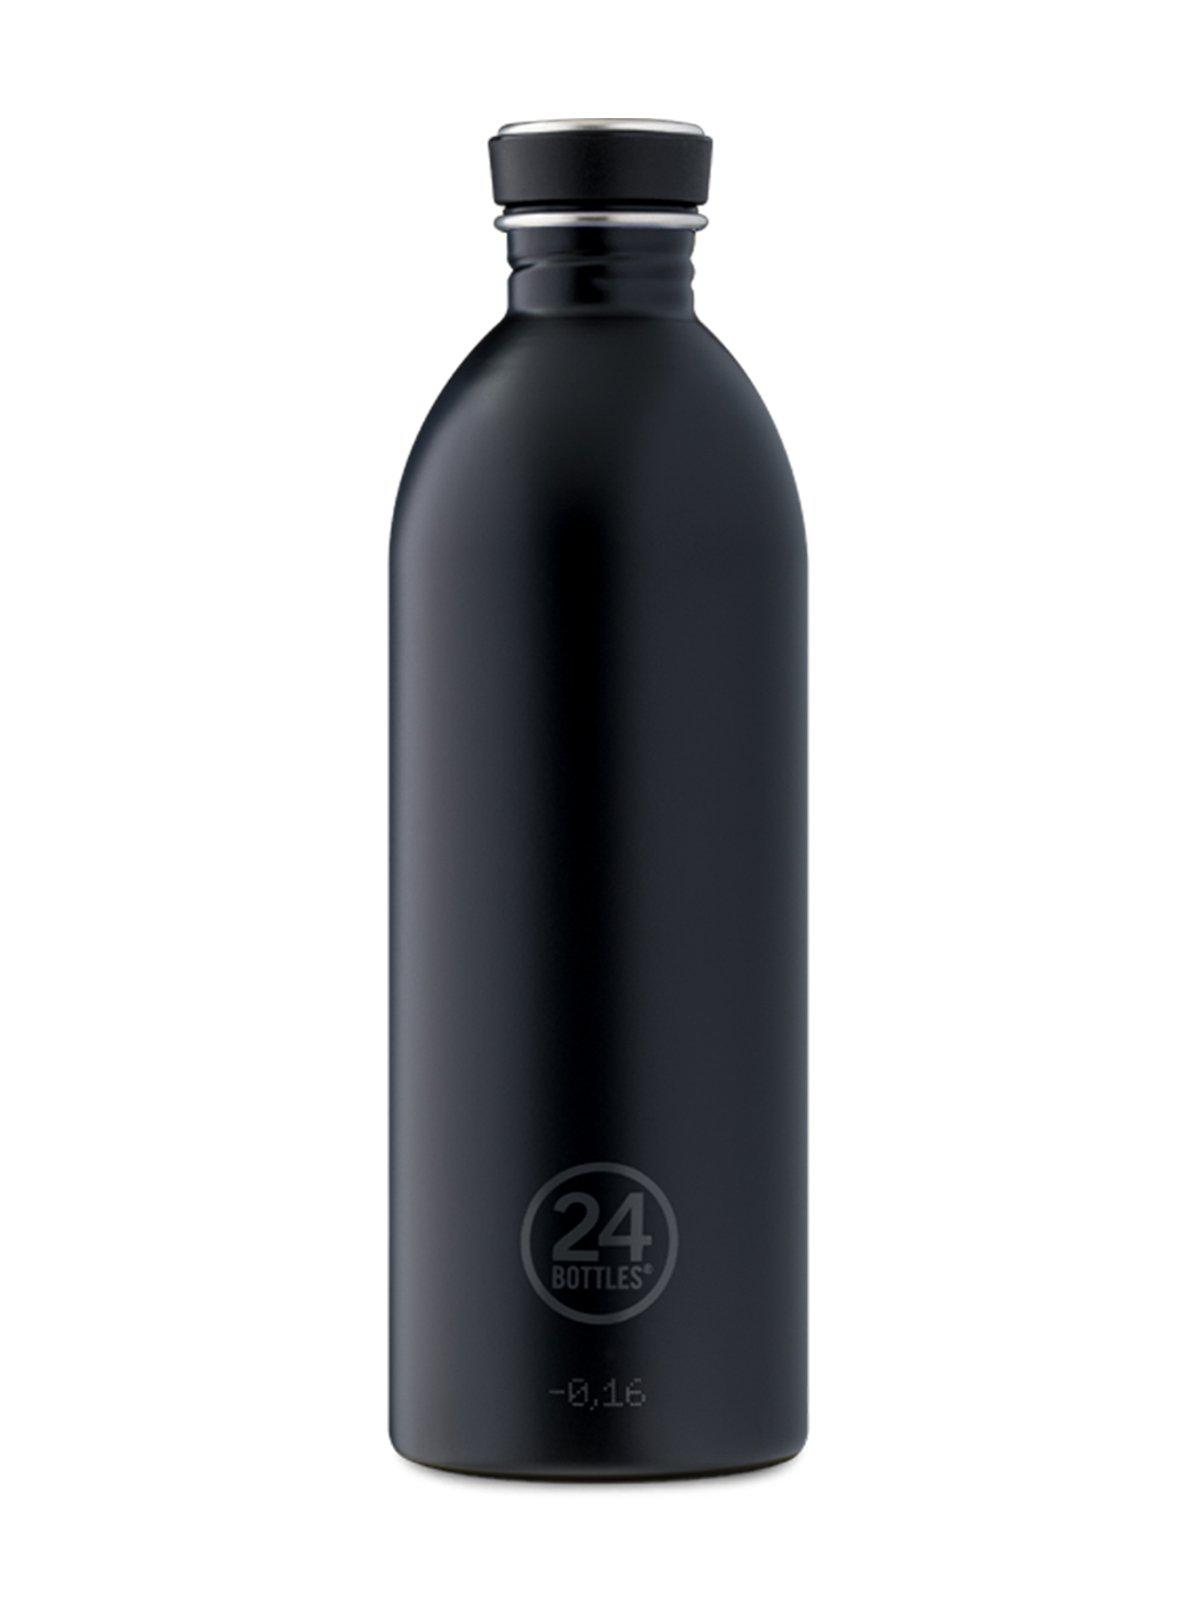 24Bottles Urban Bottle Tuxedo Black 1000ml - MORE by Morello Indonesia